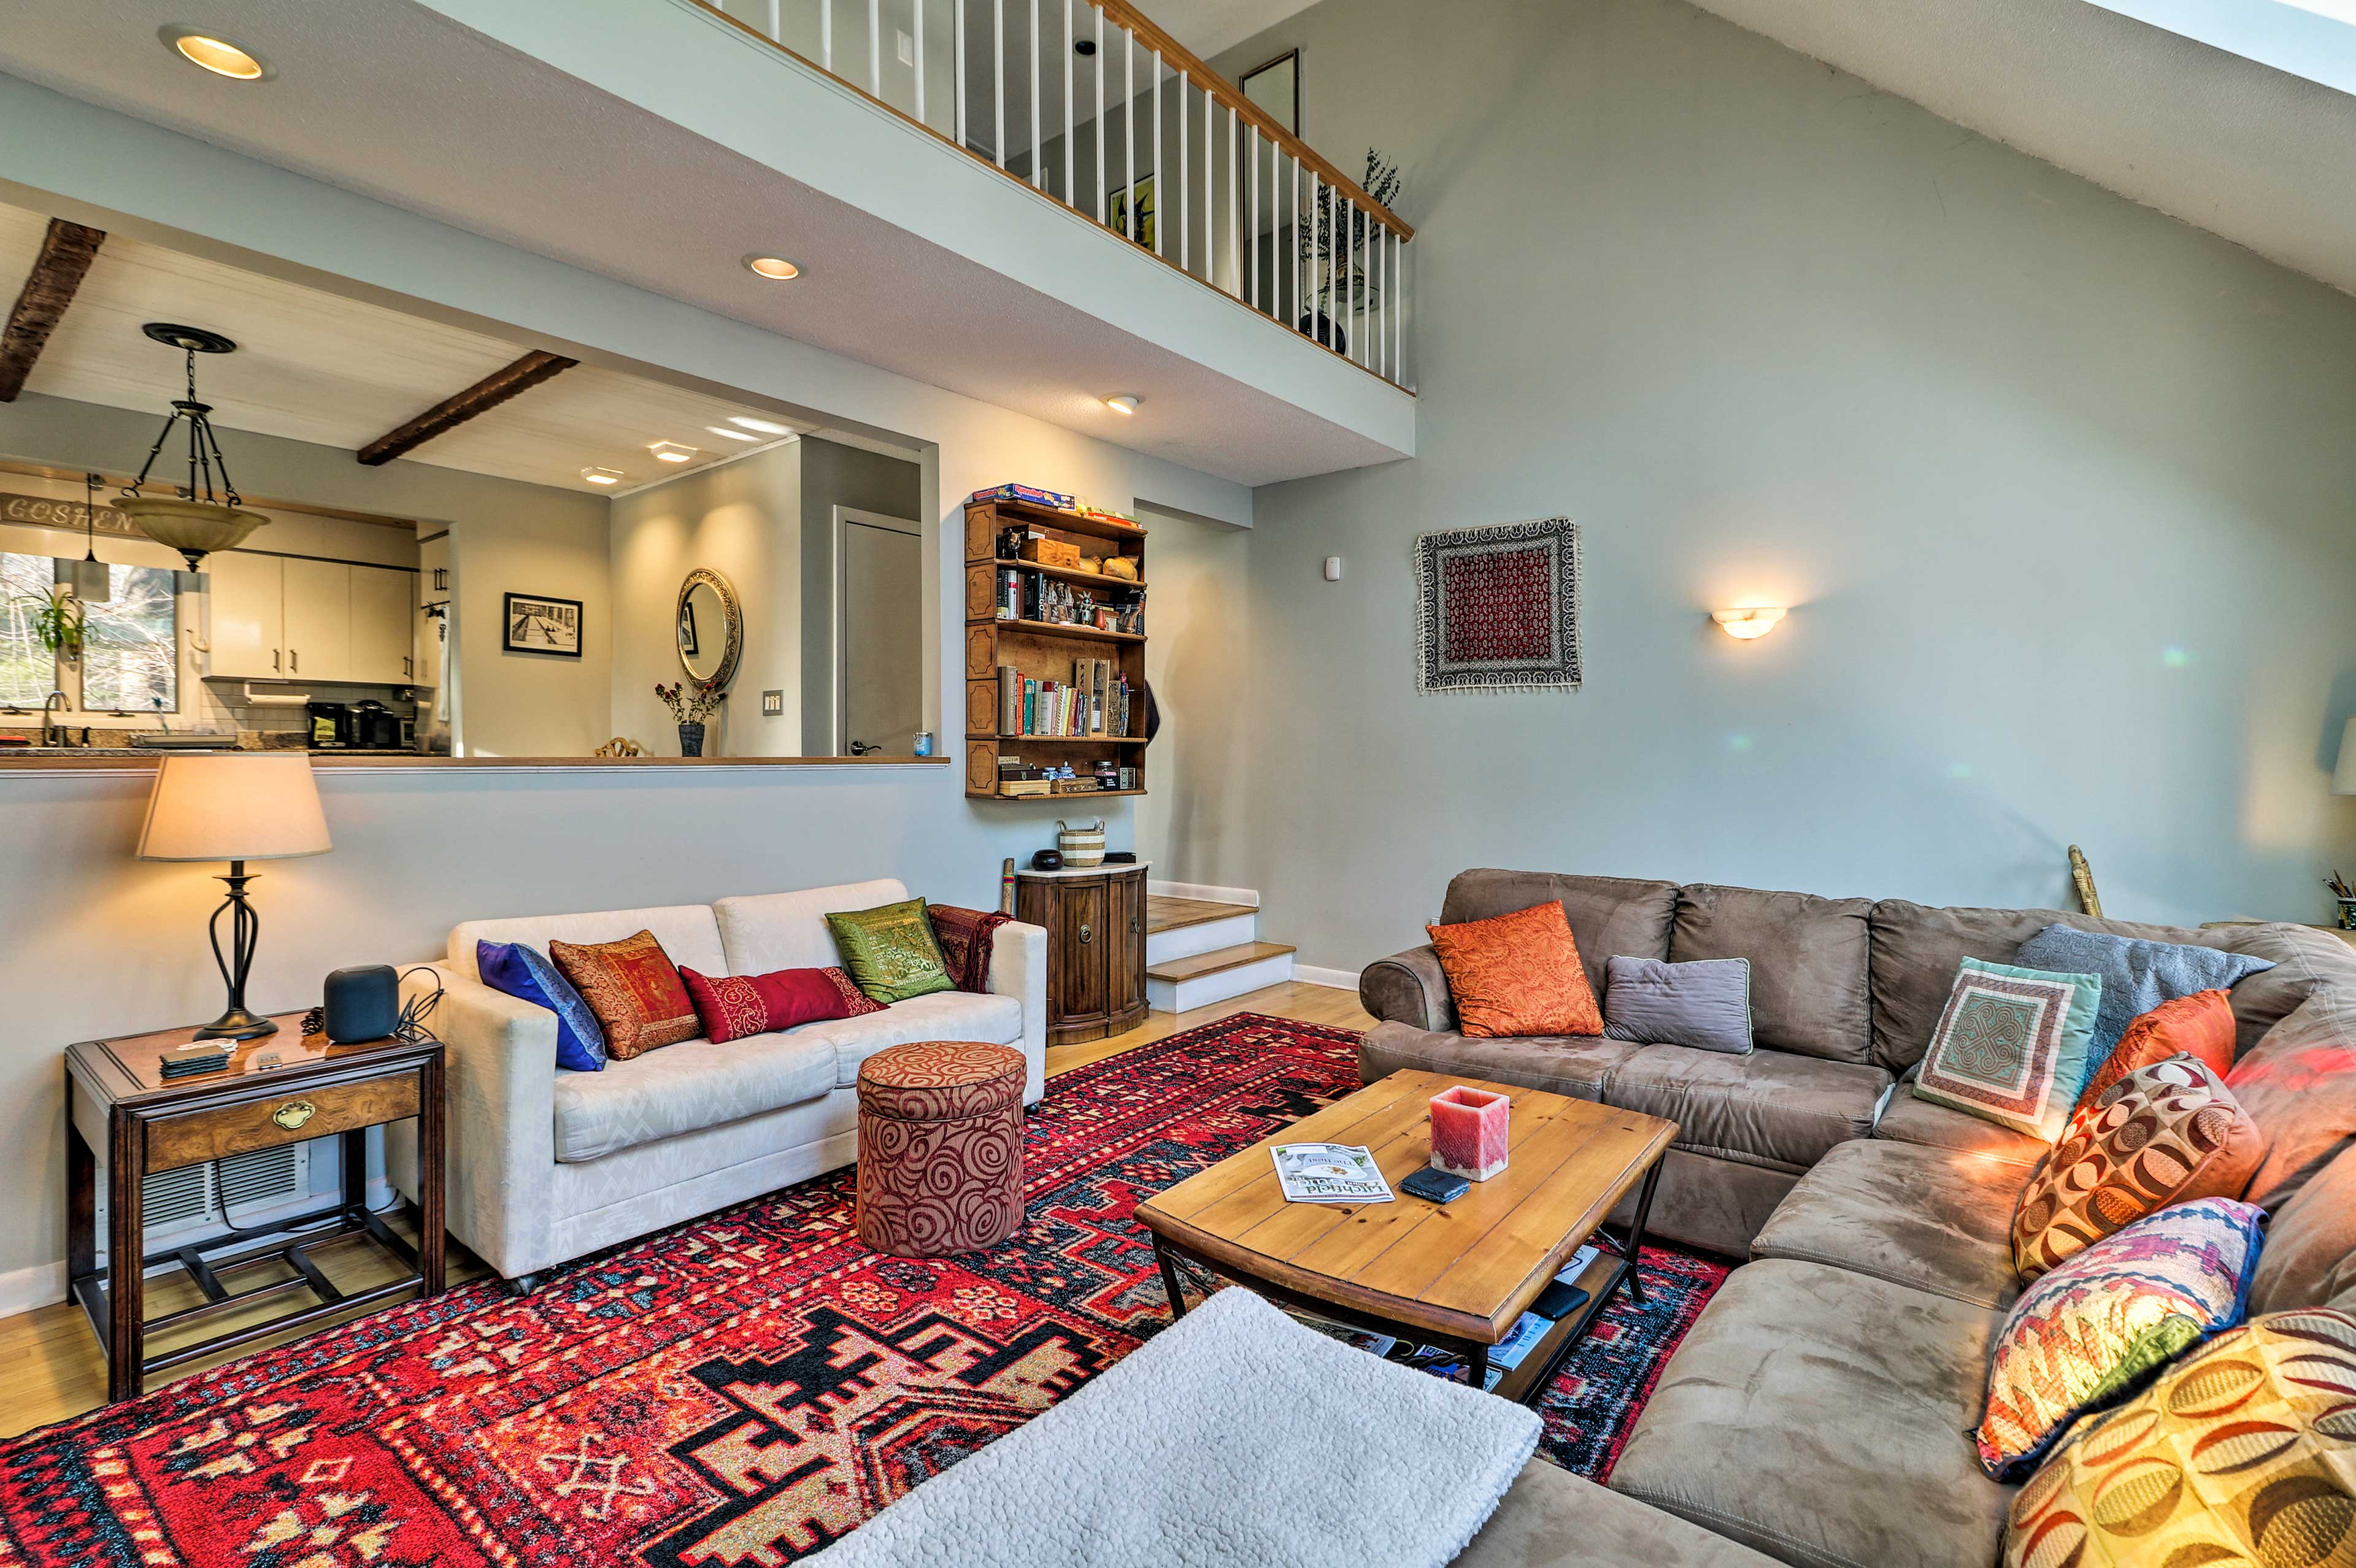 Kick back and relax in the cozy living area.